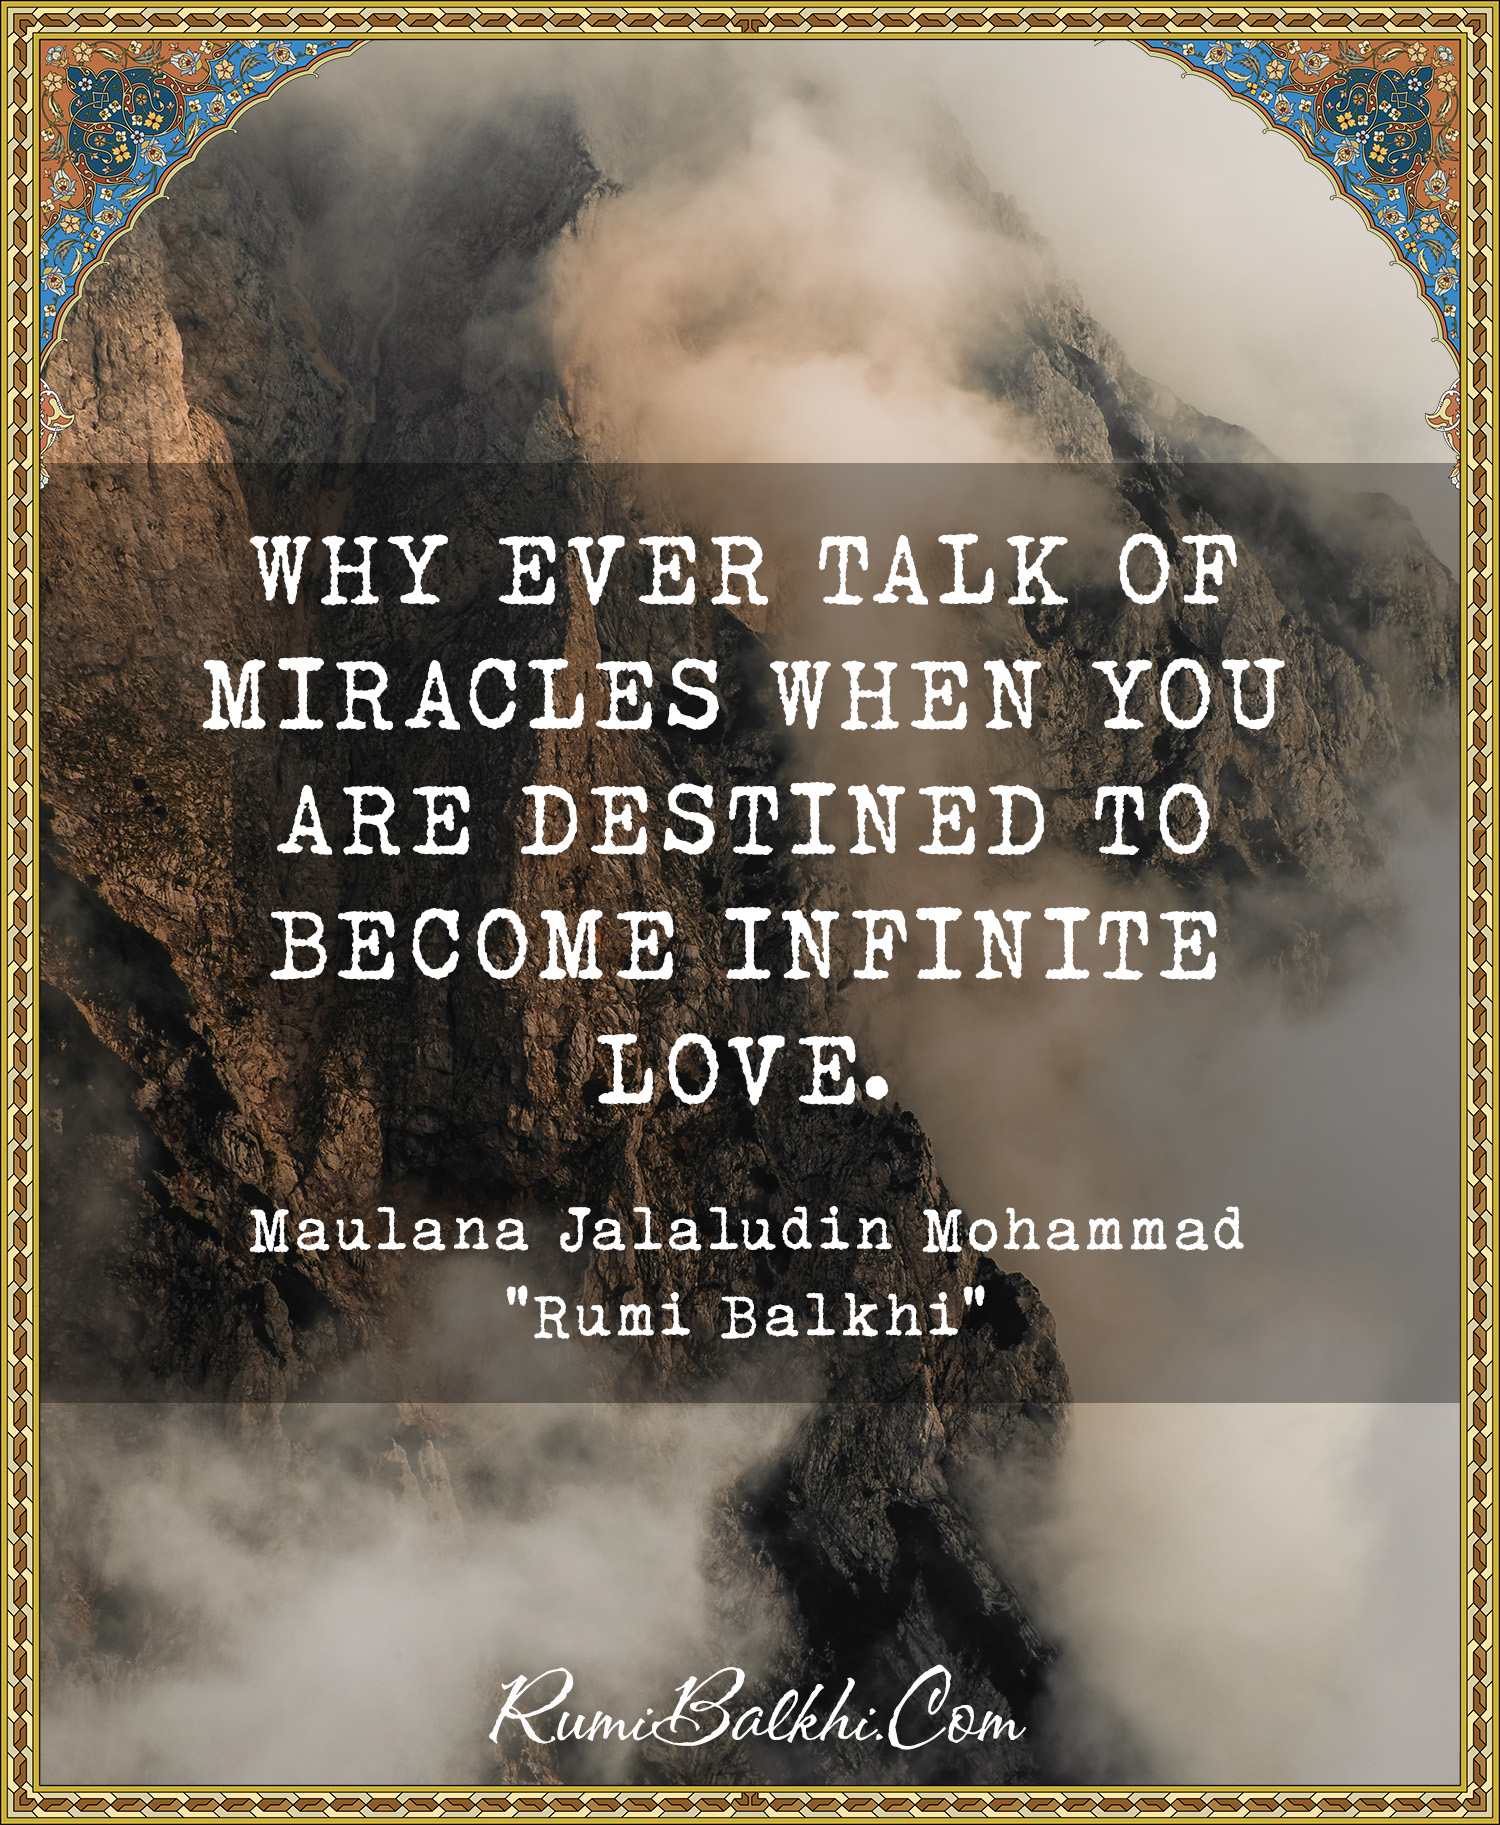 Why Ever Talk Of Miracles When You Are Destined To Become Infinite Love